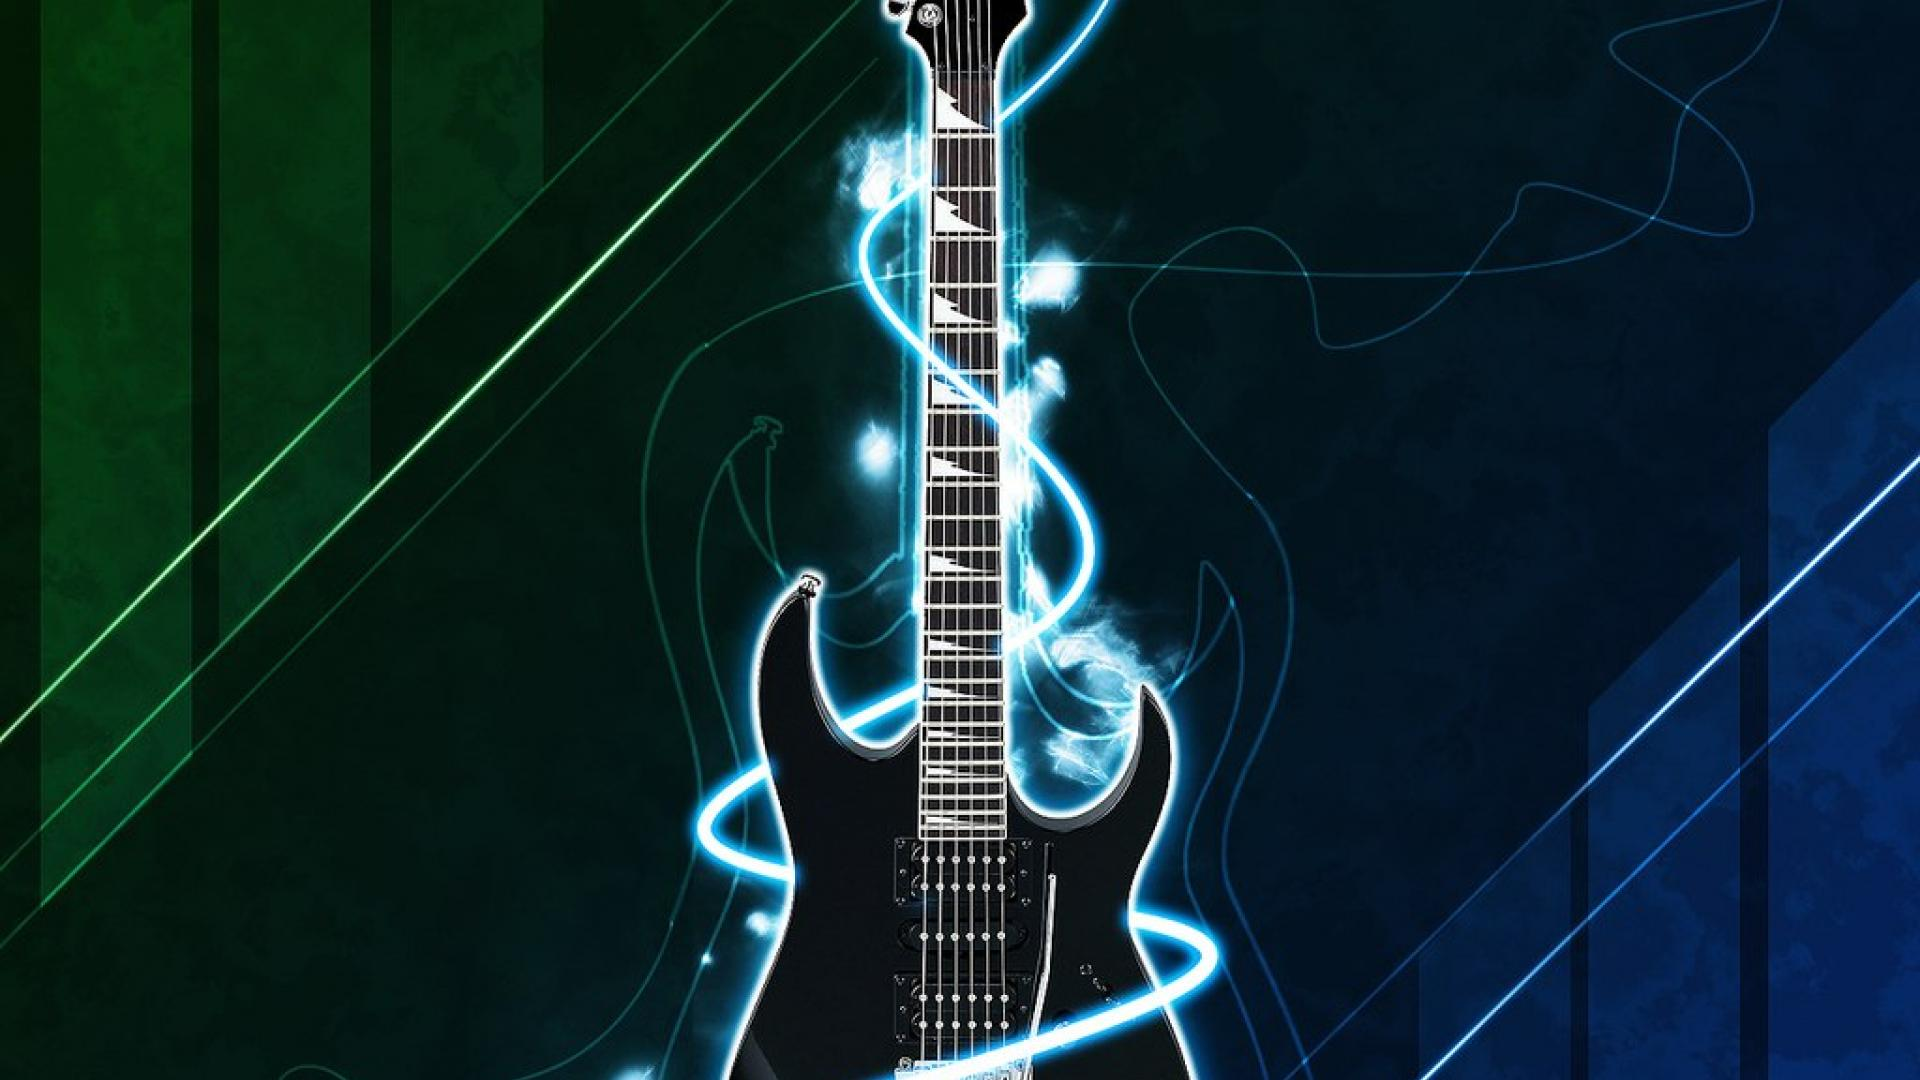 Fire Guitar Wallpaper Guitar Wallpaper For Phone Ibanez 311743 Hd Wallpaper Backgrounds Download